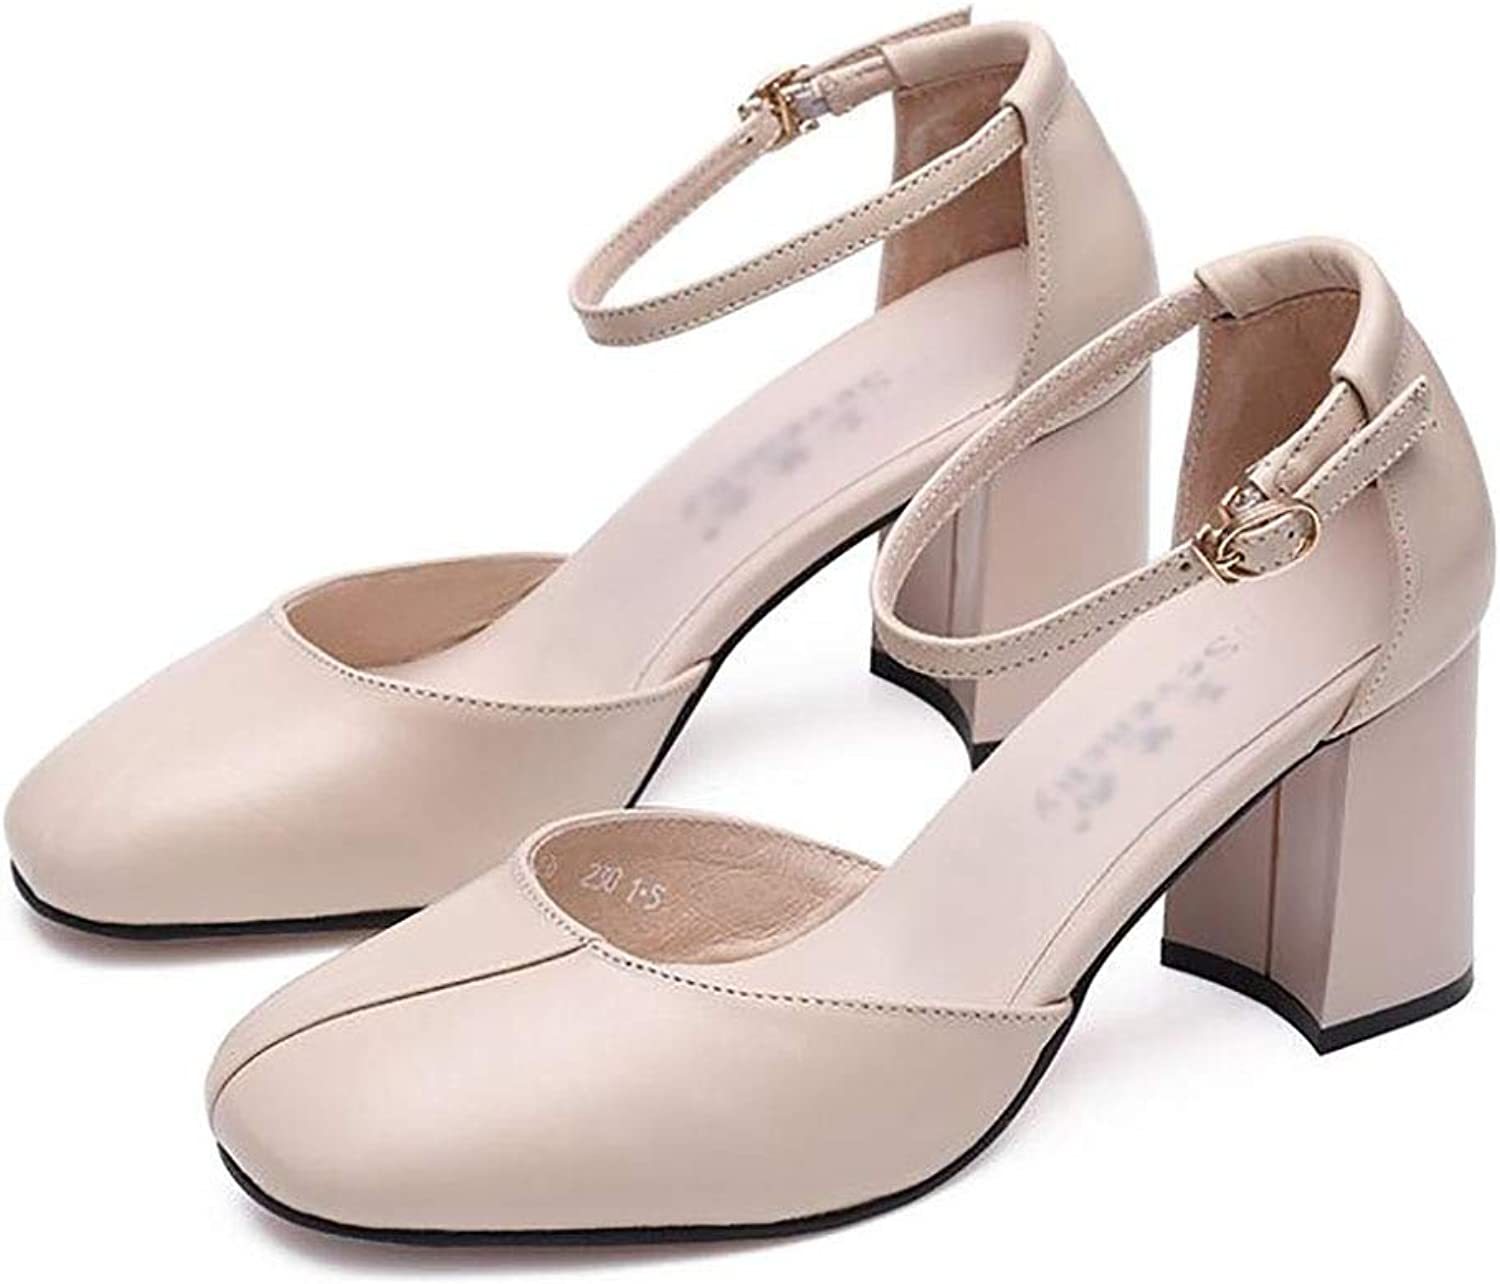 Women's shoes,Non-Slip Comfortable shoes,Single shoes,Coarse Heel shoes,Comfortable Women's shoes (color   B, Size   34)